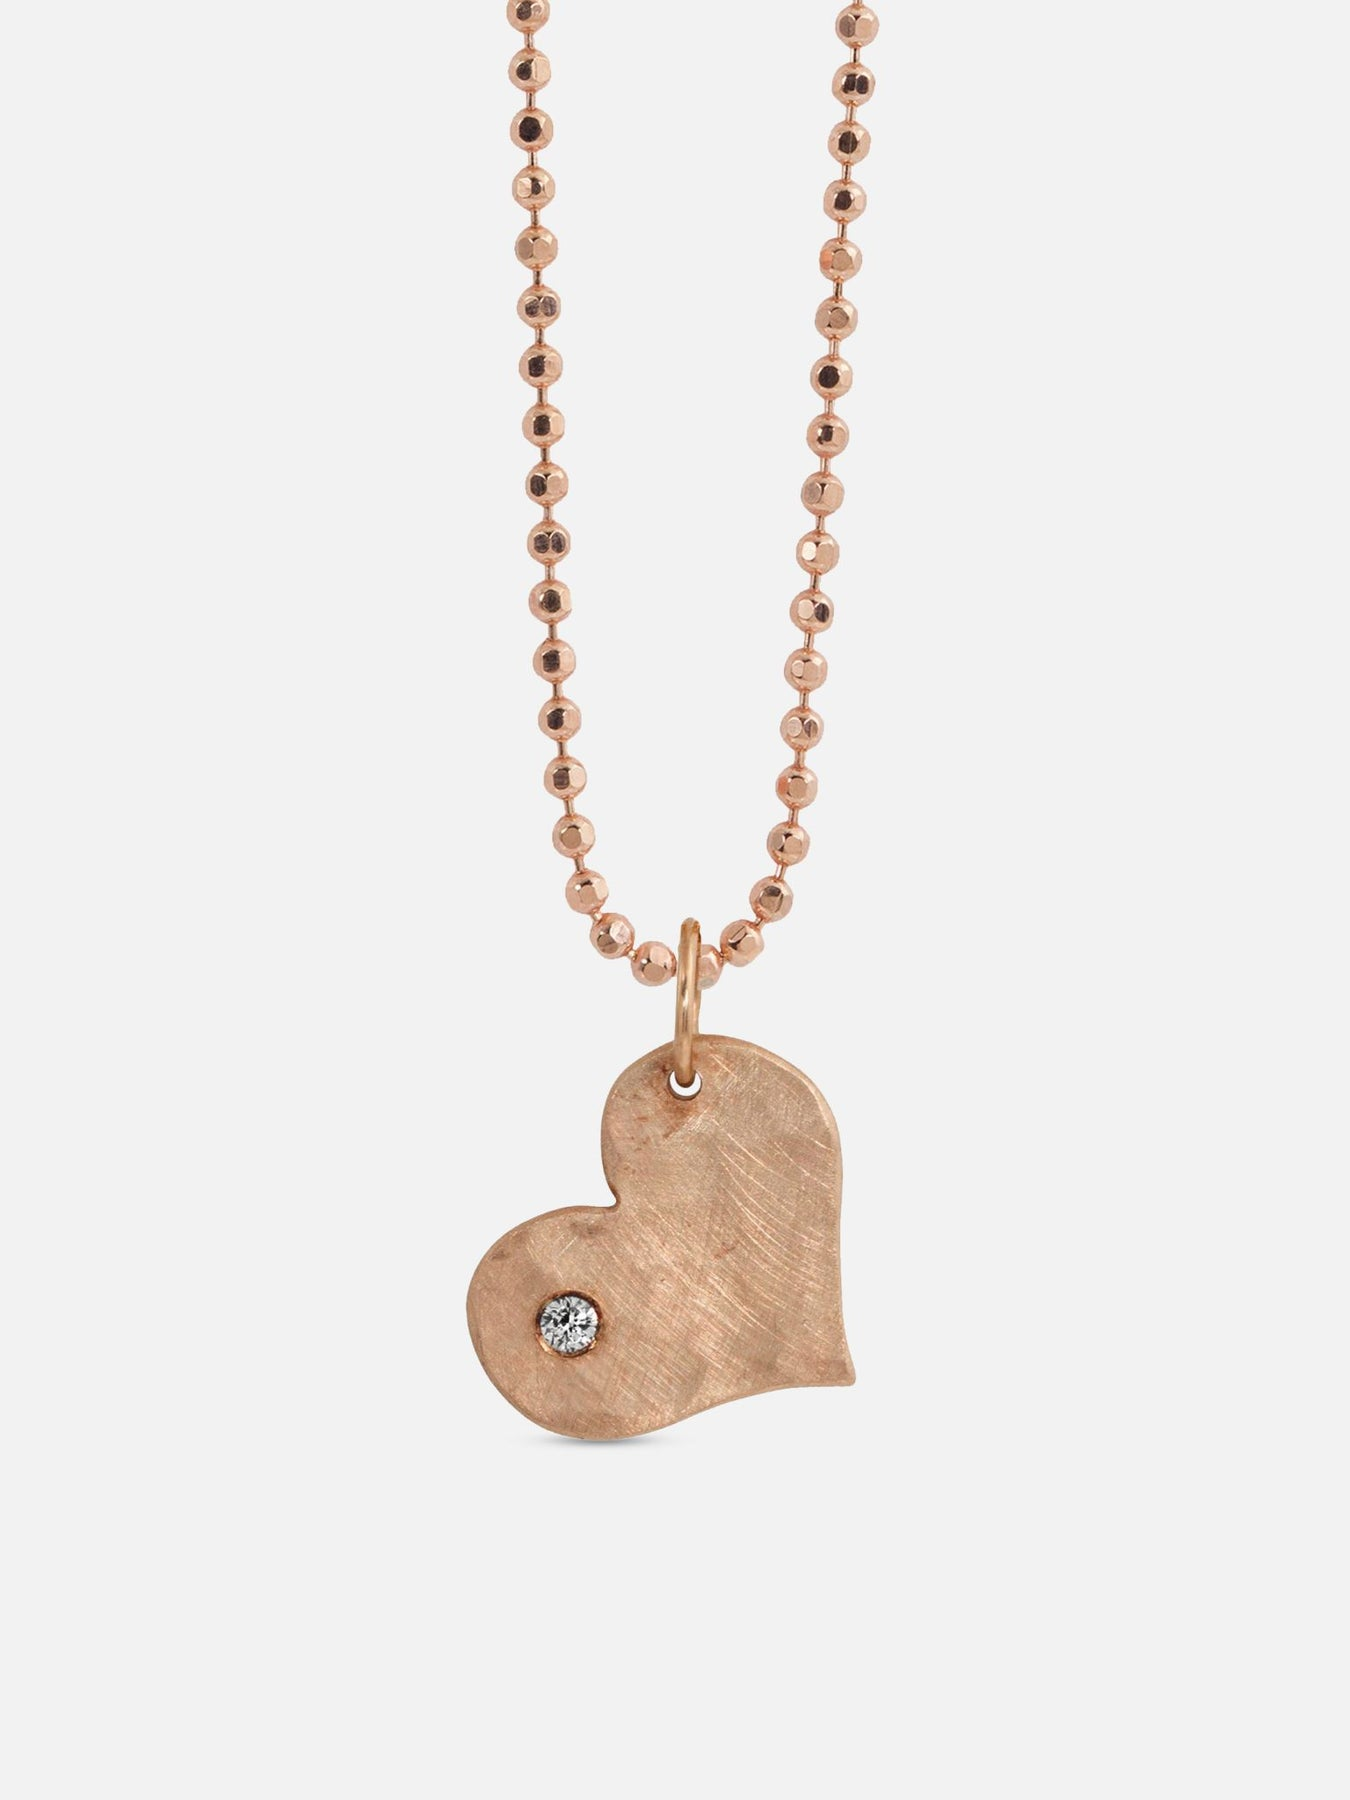 Lovely Vintage 32 in Gold Pendant Heart Charm Necklace